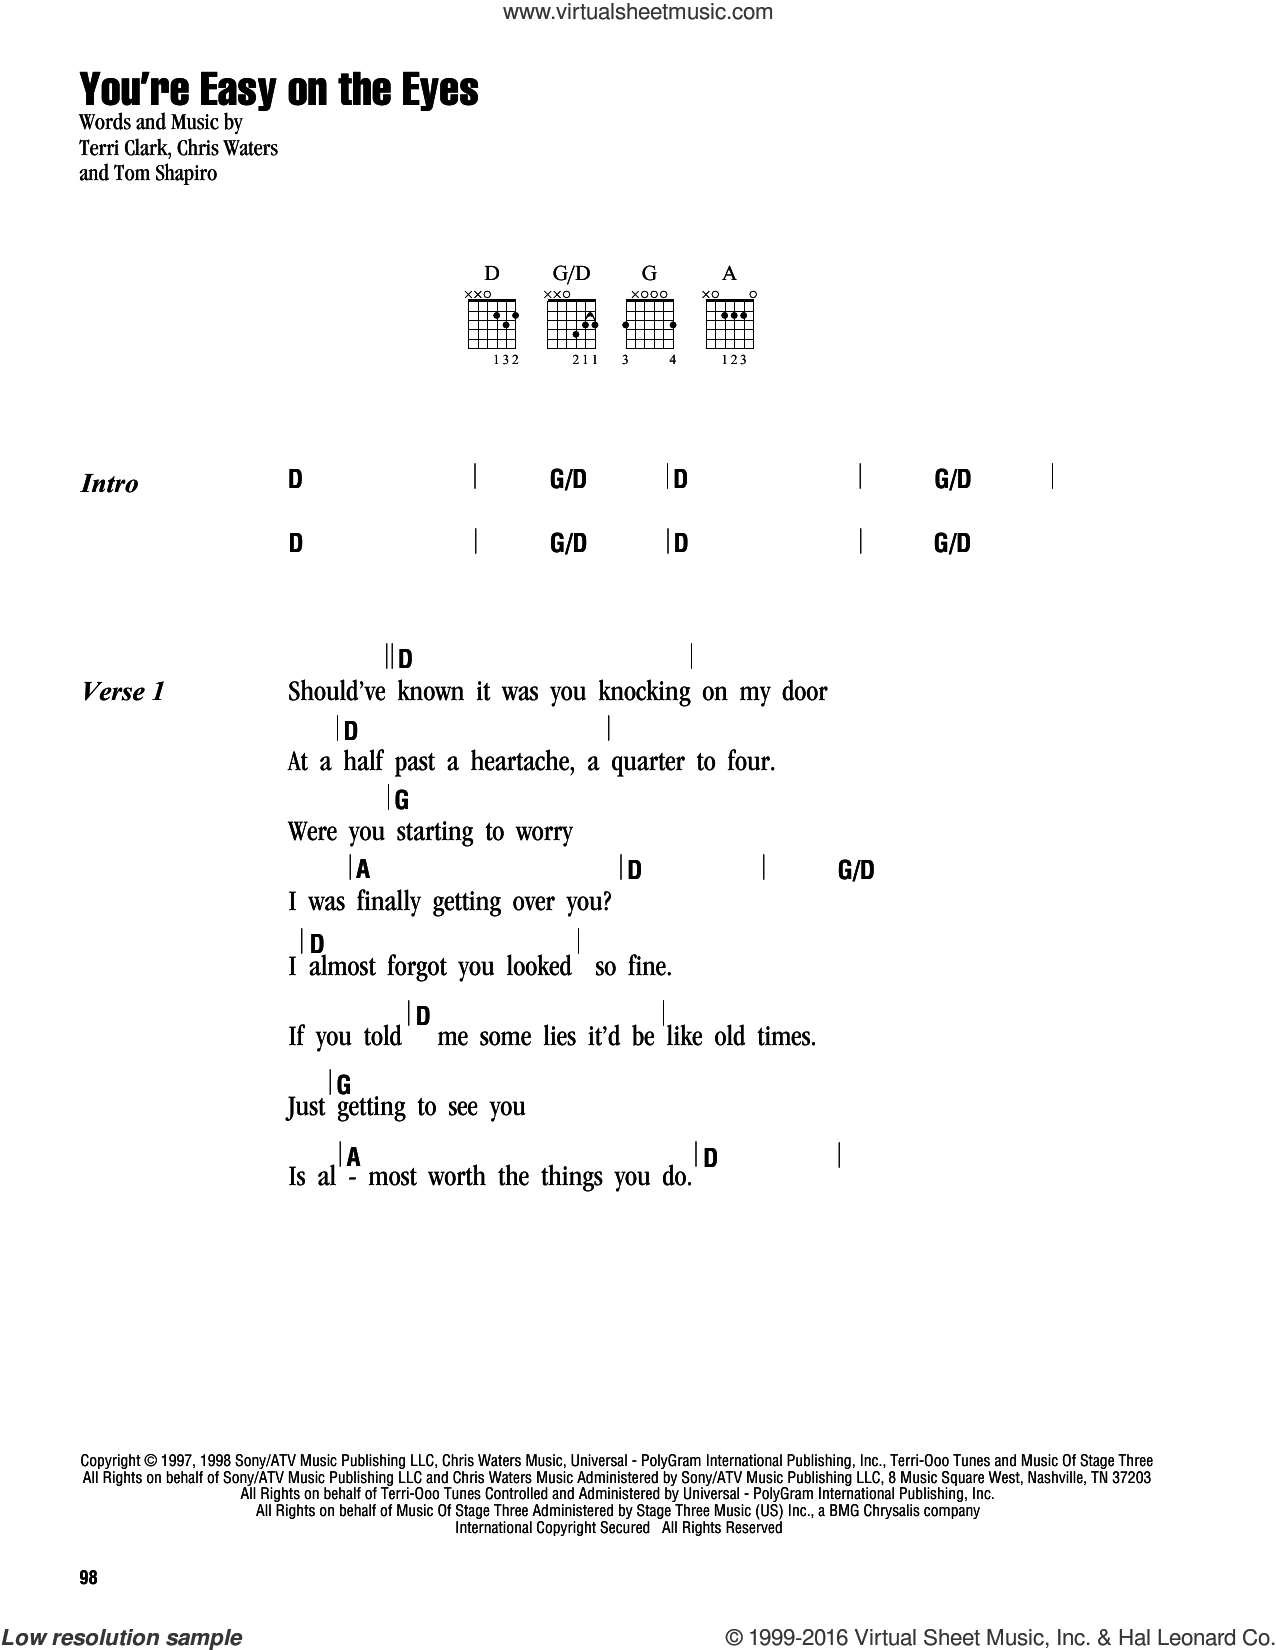 You're Easy On The Eyes sheet music for guitar (chords) by Terri Clark, Chris Waters and Tom Shapiro, intermediate